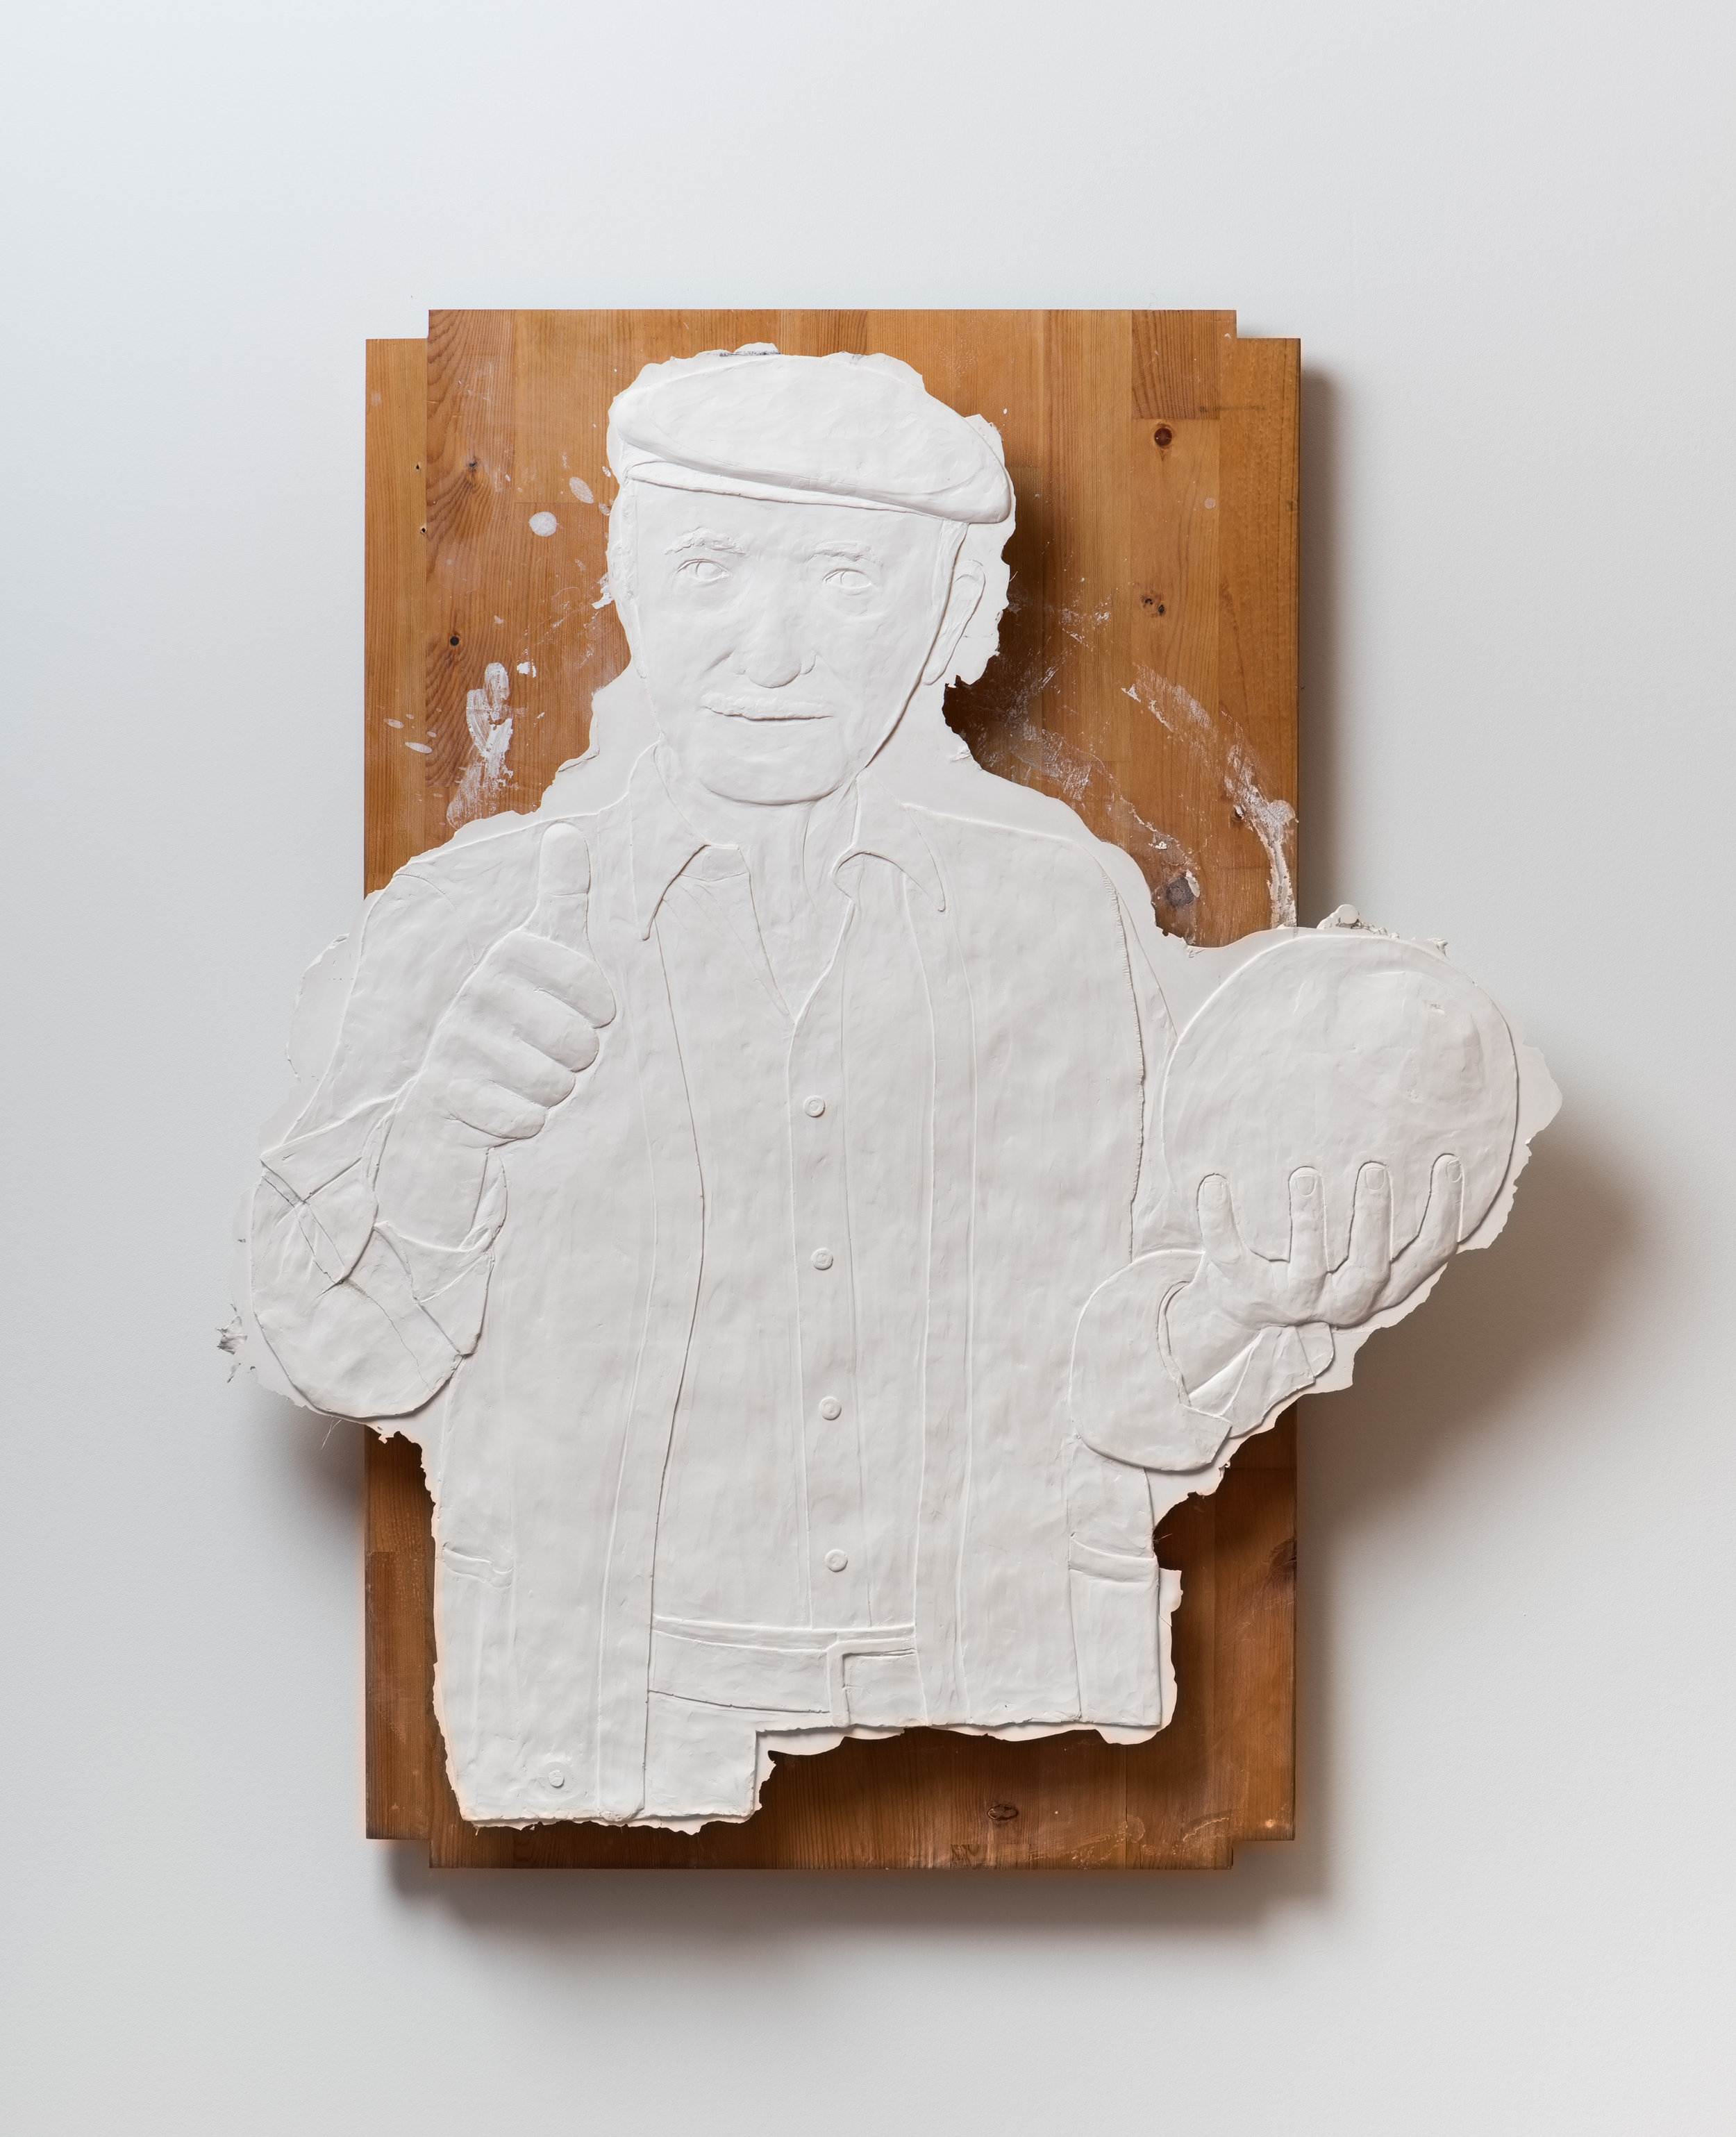 Untitled , 2017 Gypsum cement, burlap, and wood 20 x 26 x 3 inches